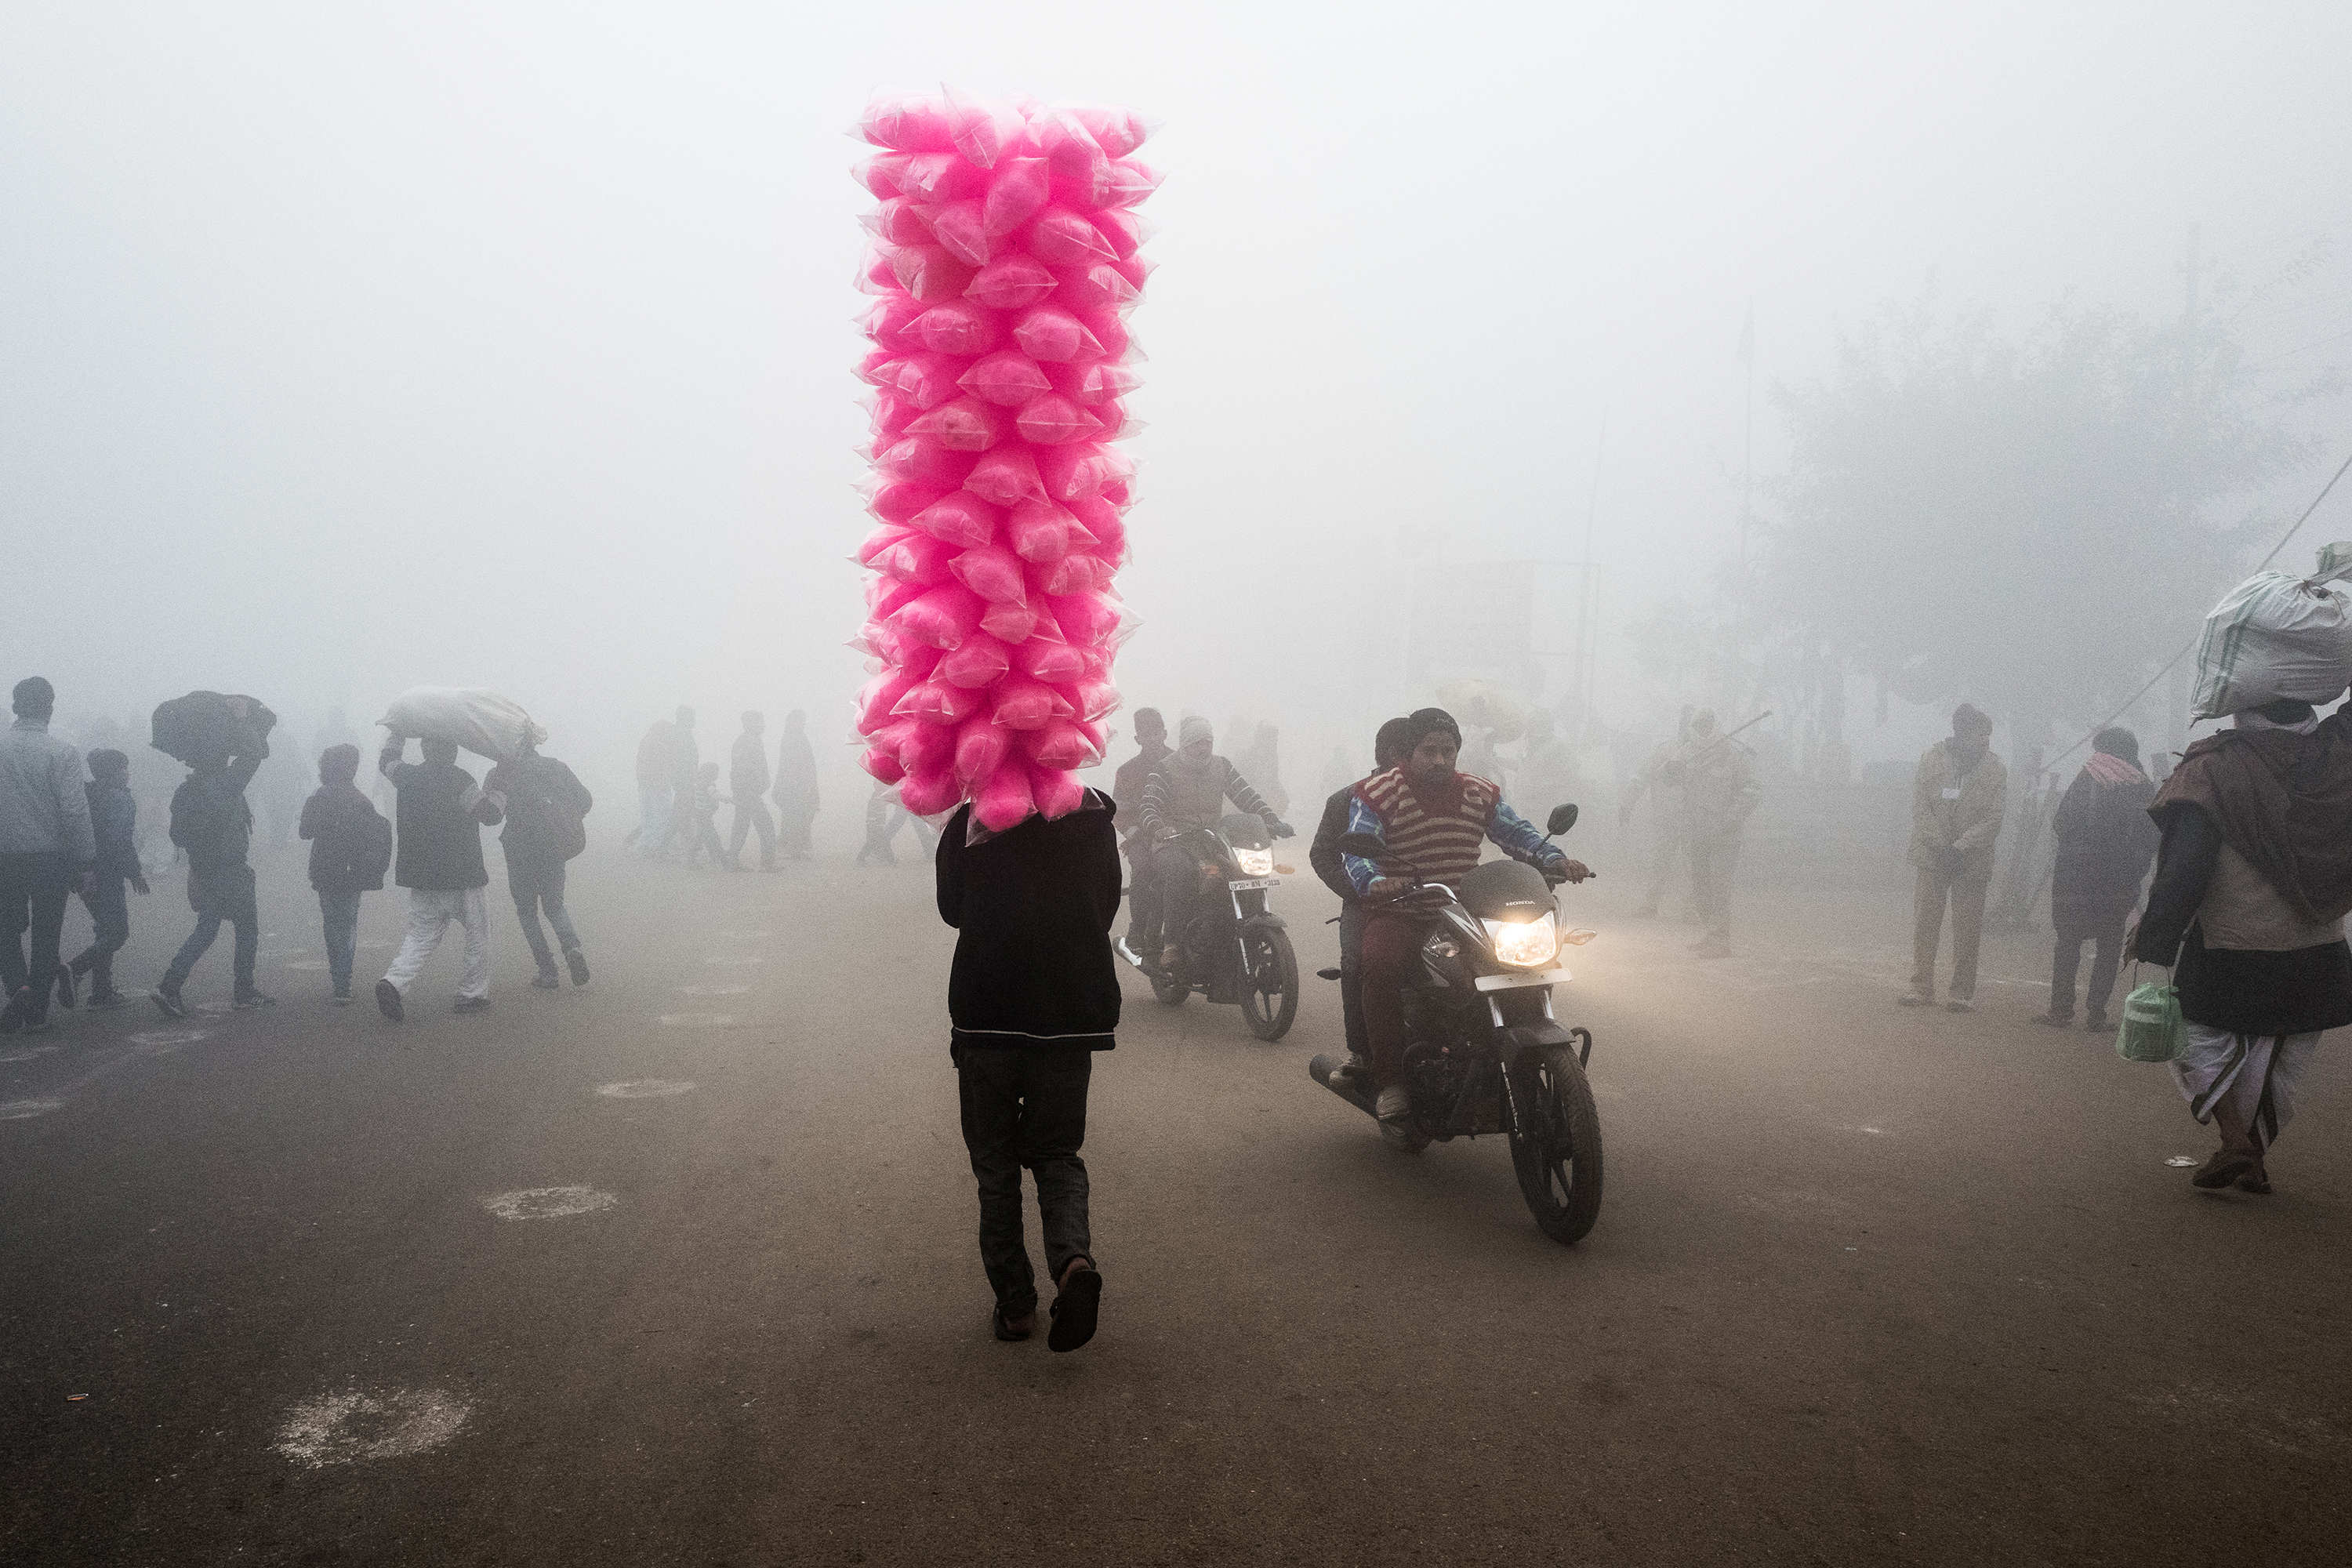 Photos Capture the 'Serenity and Chaos' of India